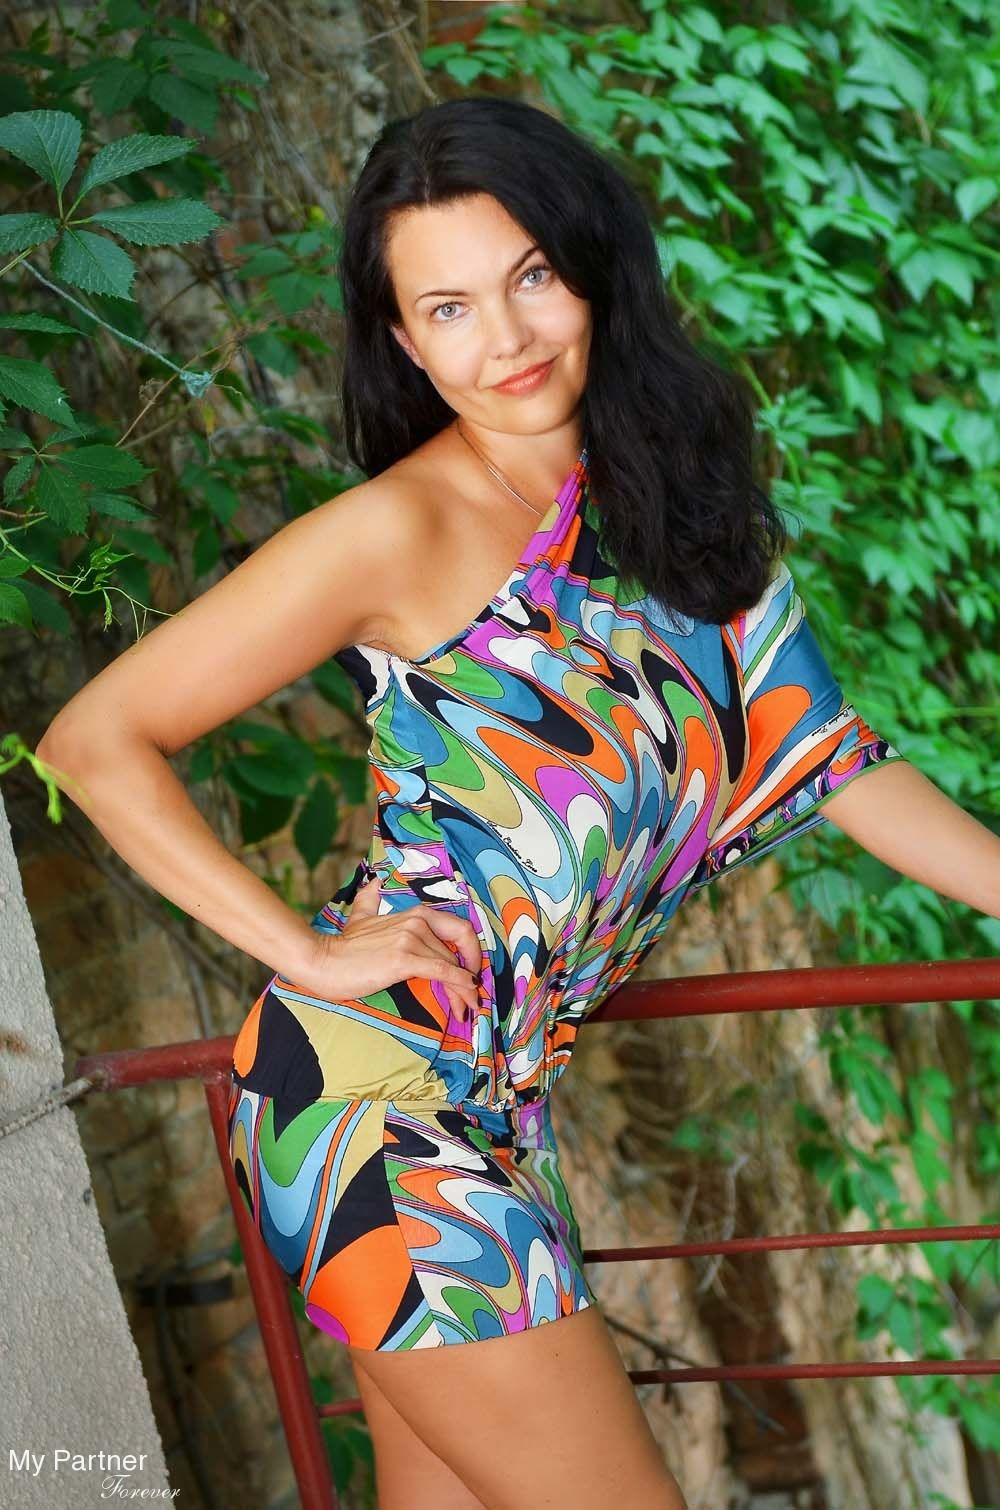 Datingsite to Meet Sexy Ukrainian Girl Olga from Kharkov, Ukraine